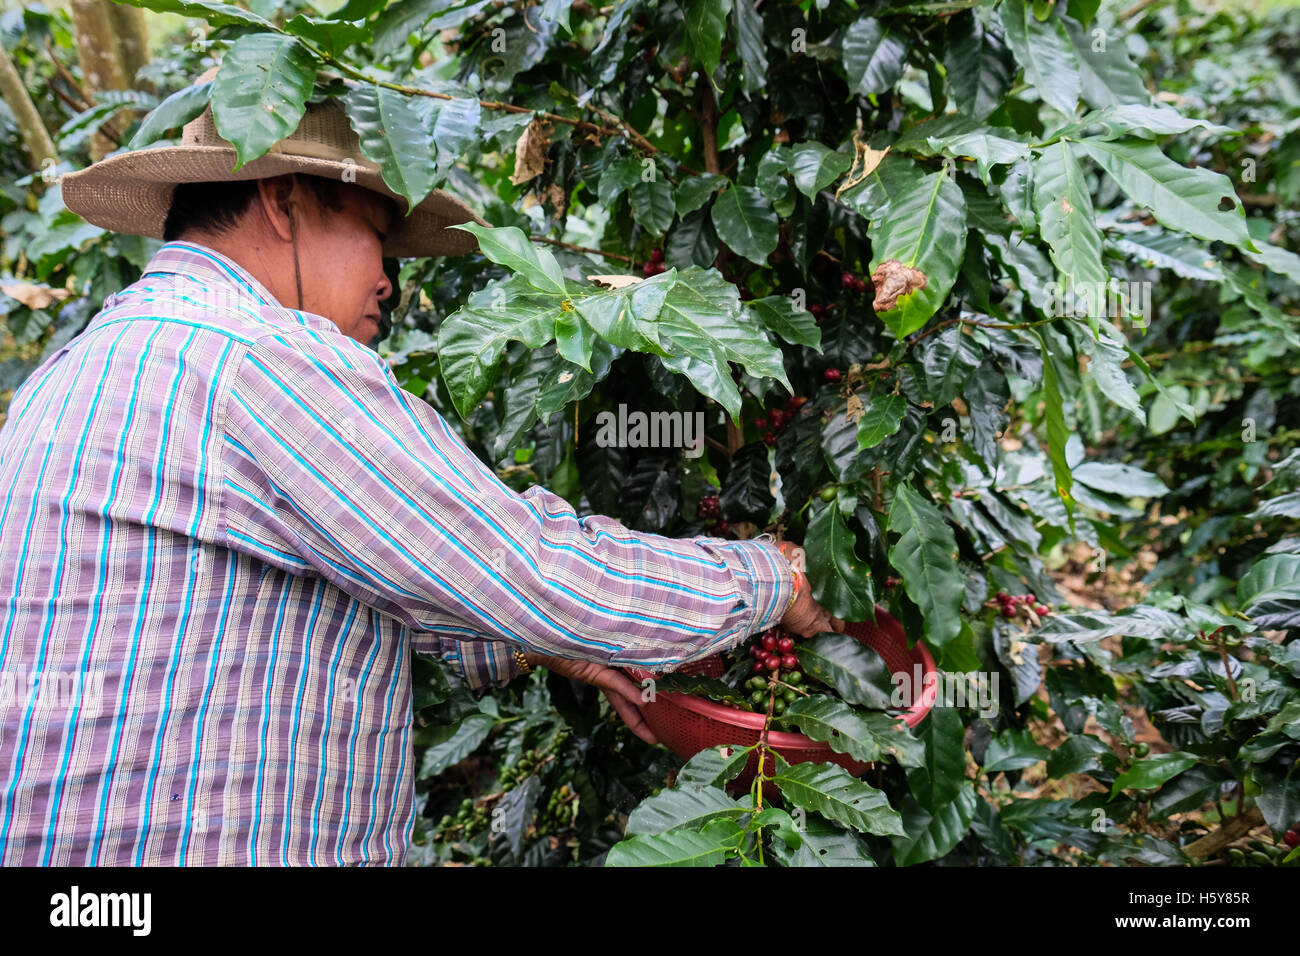 Arabica-kaffee Aus Thailand Ernte Cafe Bauer Stockfotos And Cafe Bauer Bilder Alamy